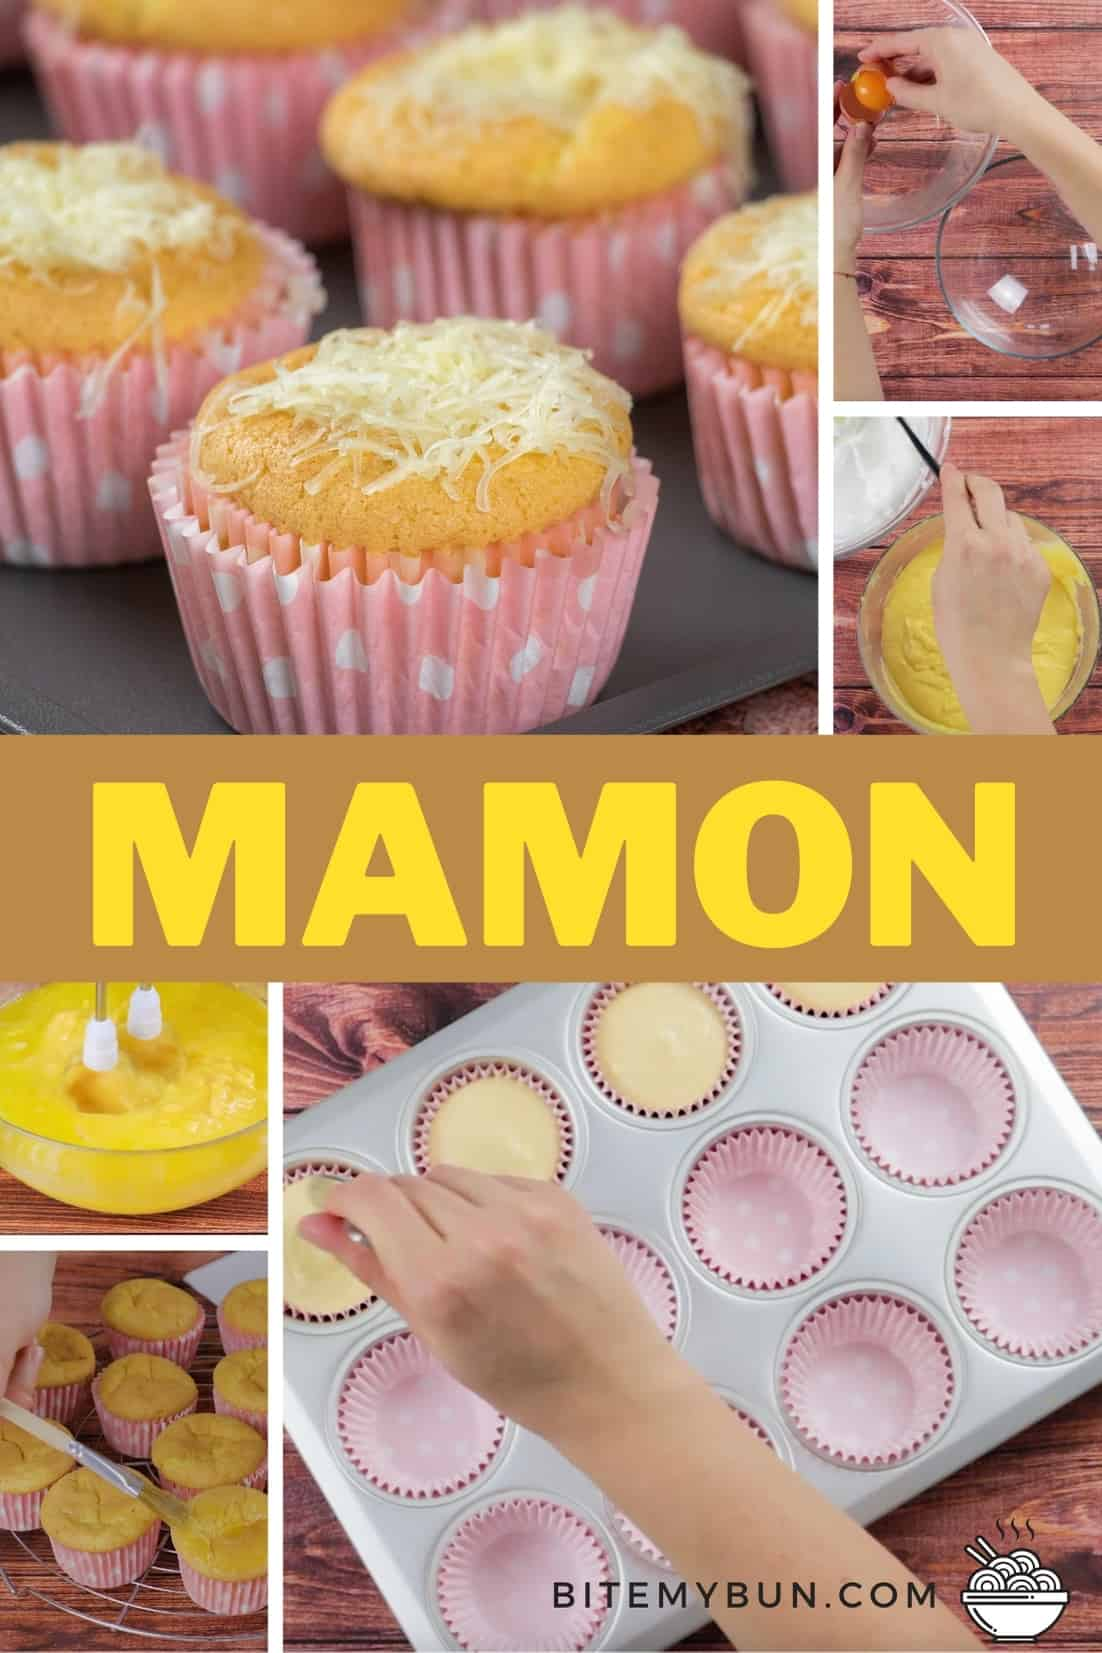 How to make cheezy filipino mamon